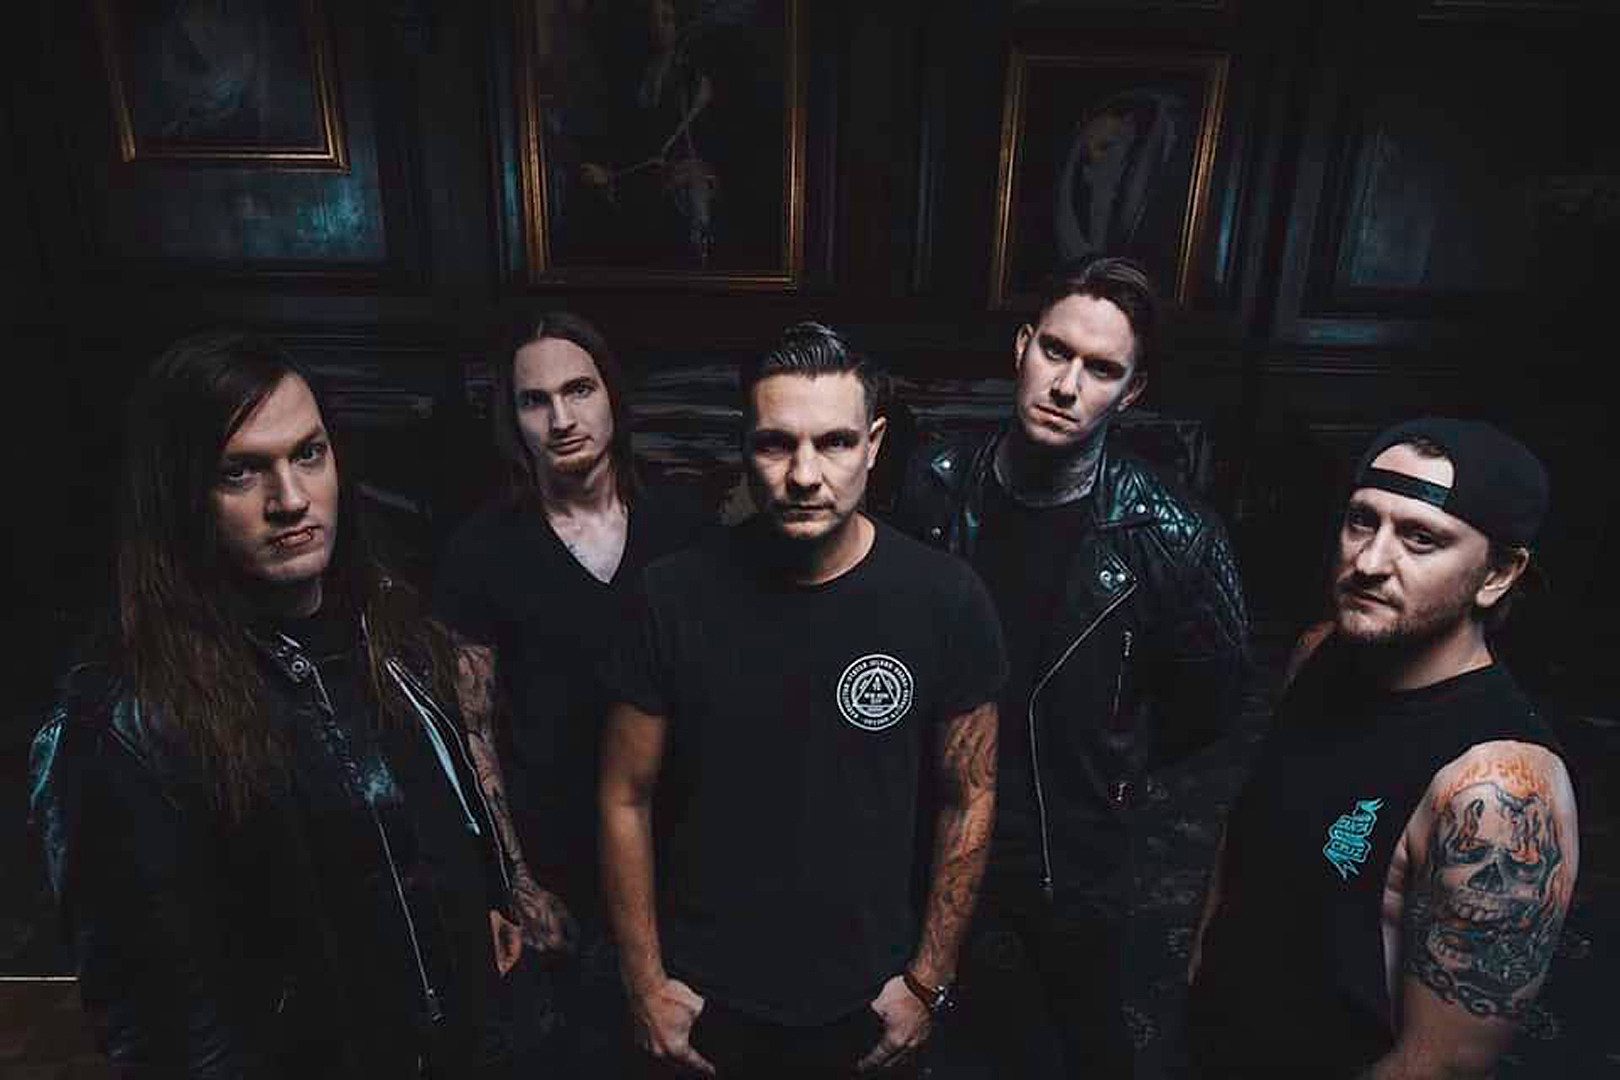 Ex-Bullet for My Valentine Drummer's New Band Releases Song, Sounds Like Old Bullet